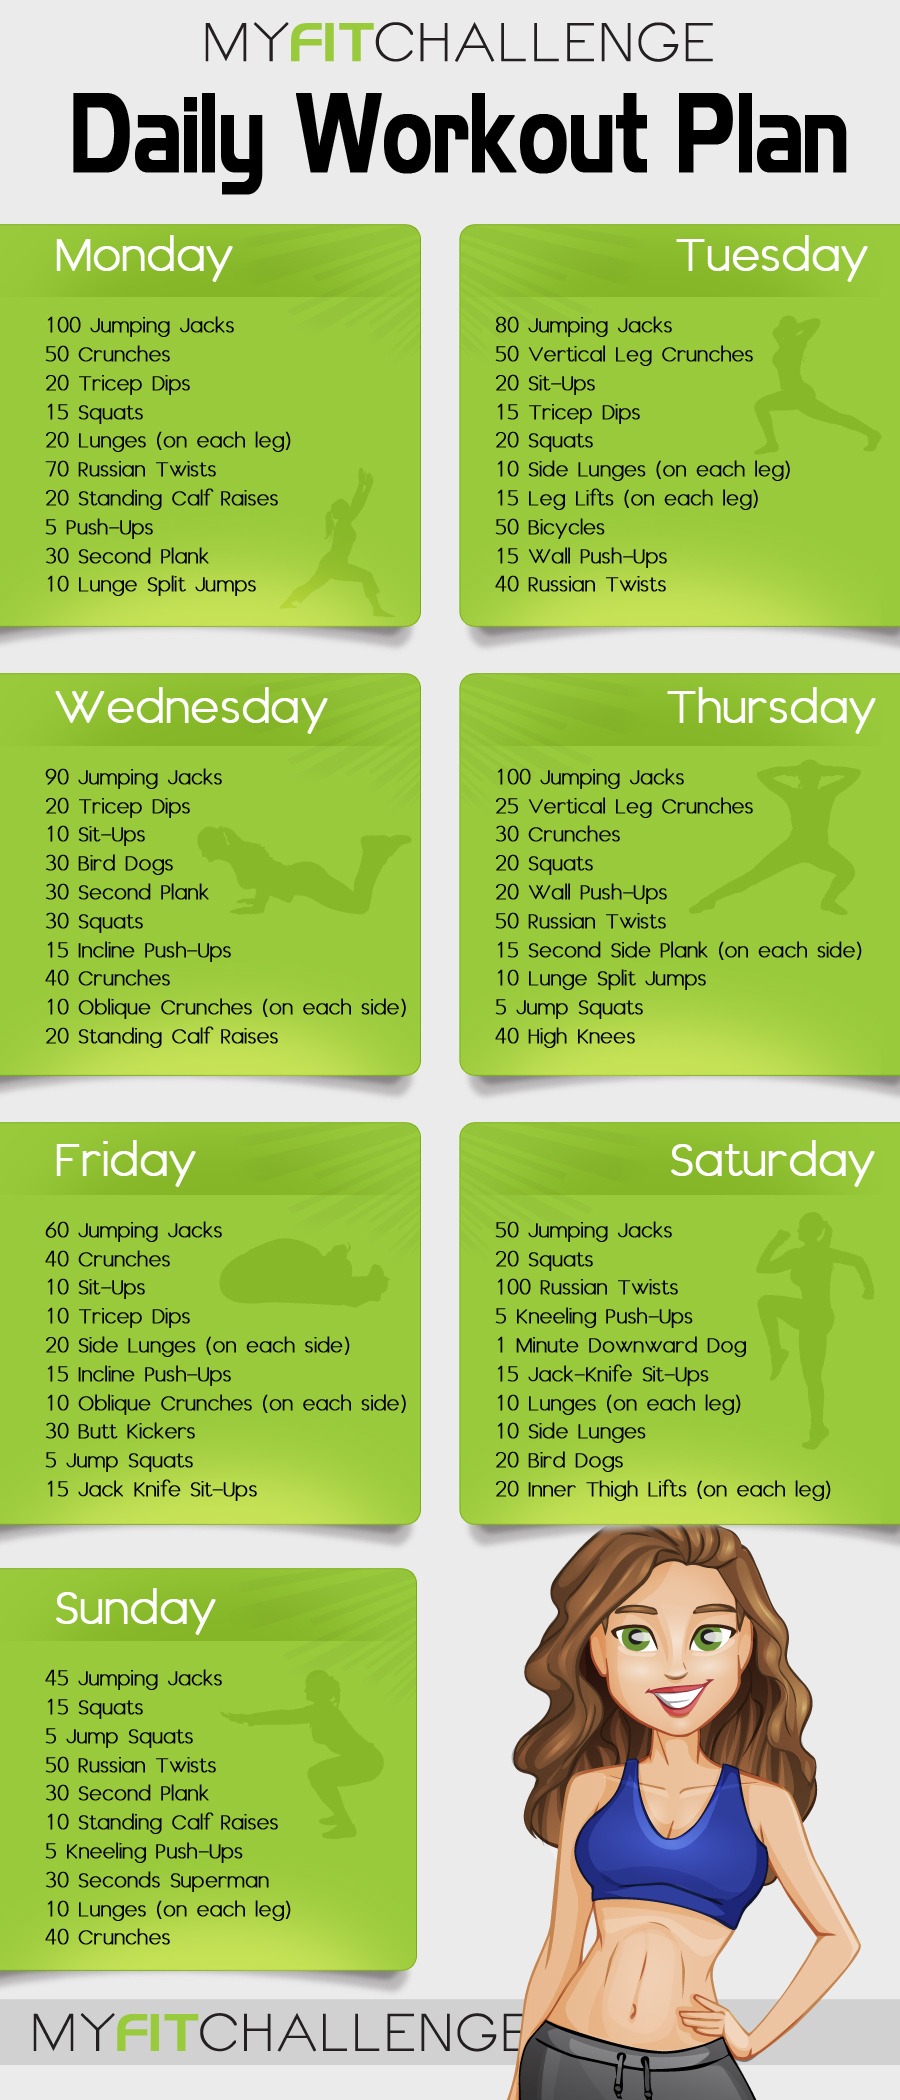 daily-workout-plan-2